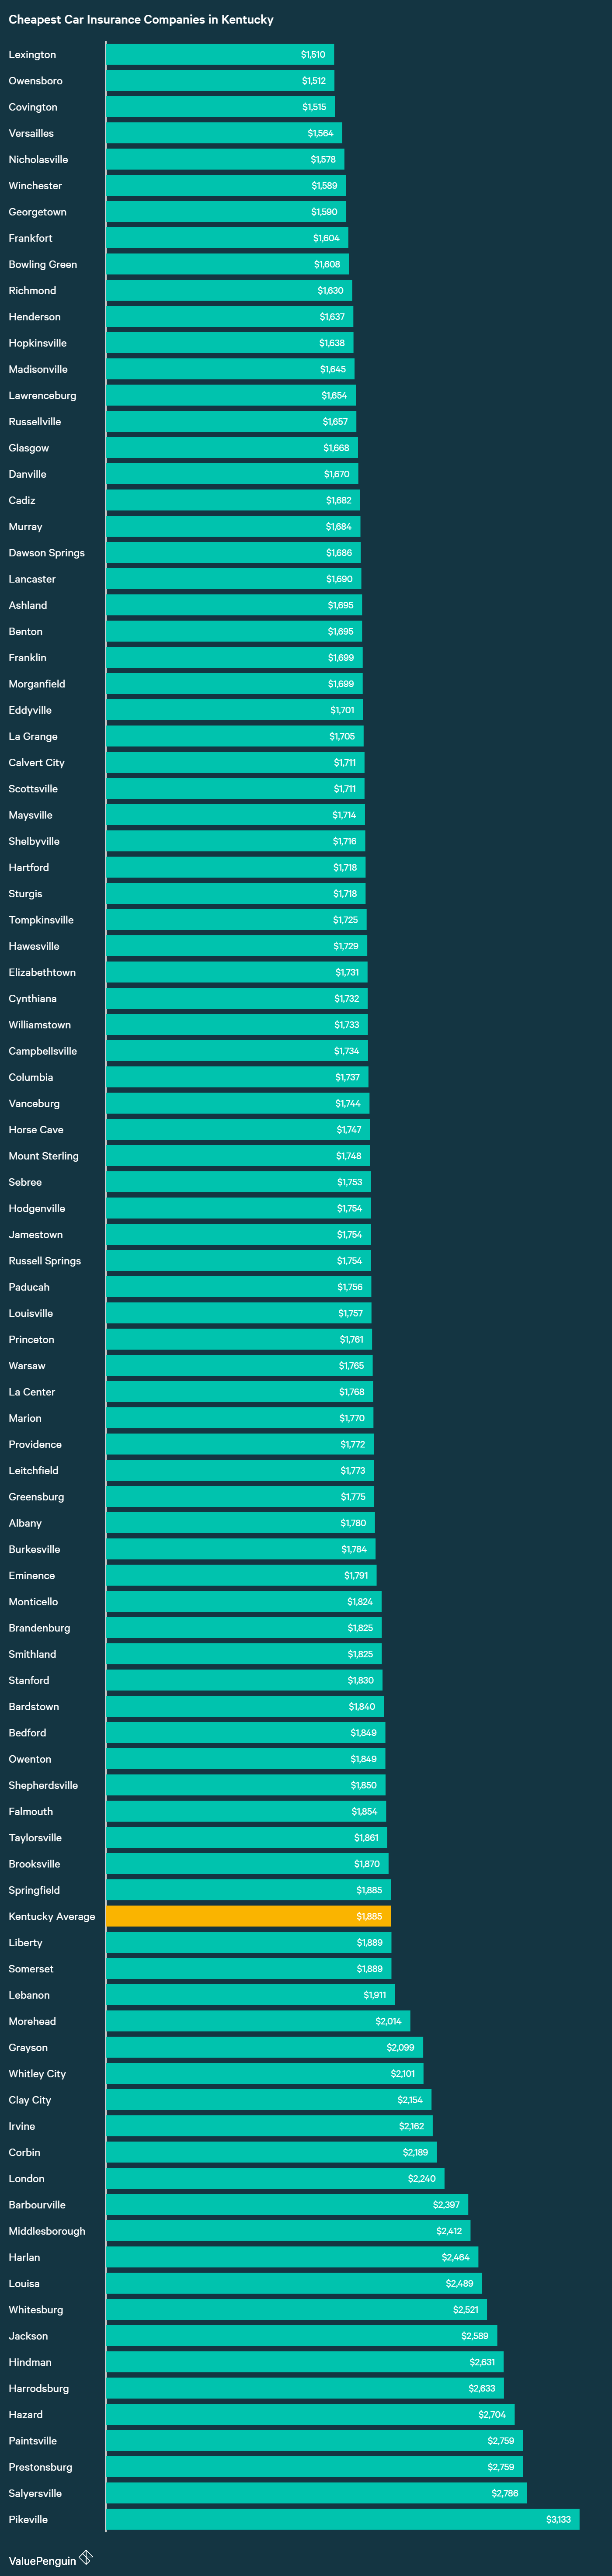 In this graph are the average yearly auto insurance premiums for the 90+ cities we analyzed in our cost study for Kentucky drivers.